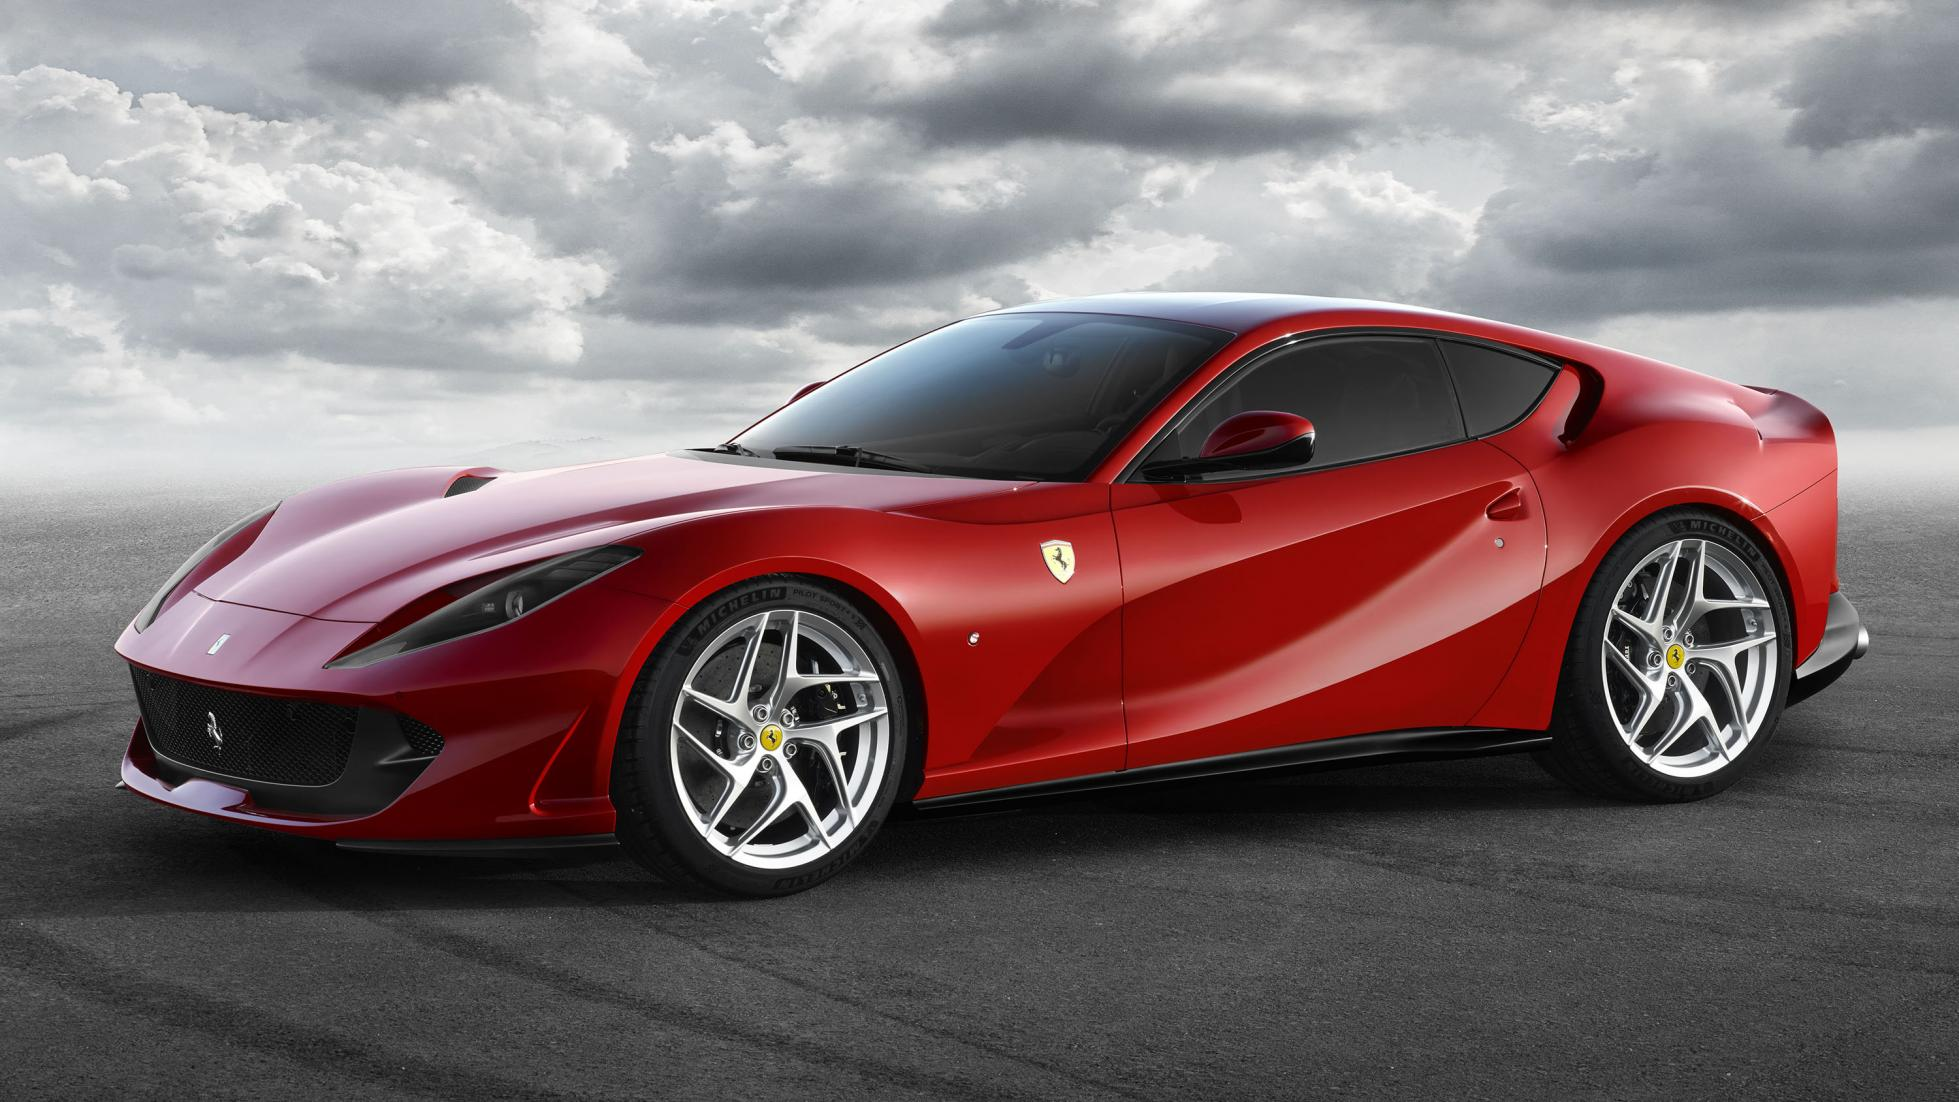 Ferrari 789bhp 812 Superfast revealed as most powerful at Geneva Car Show